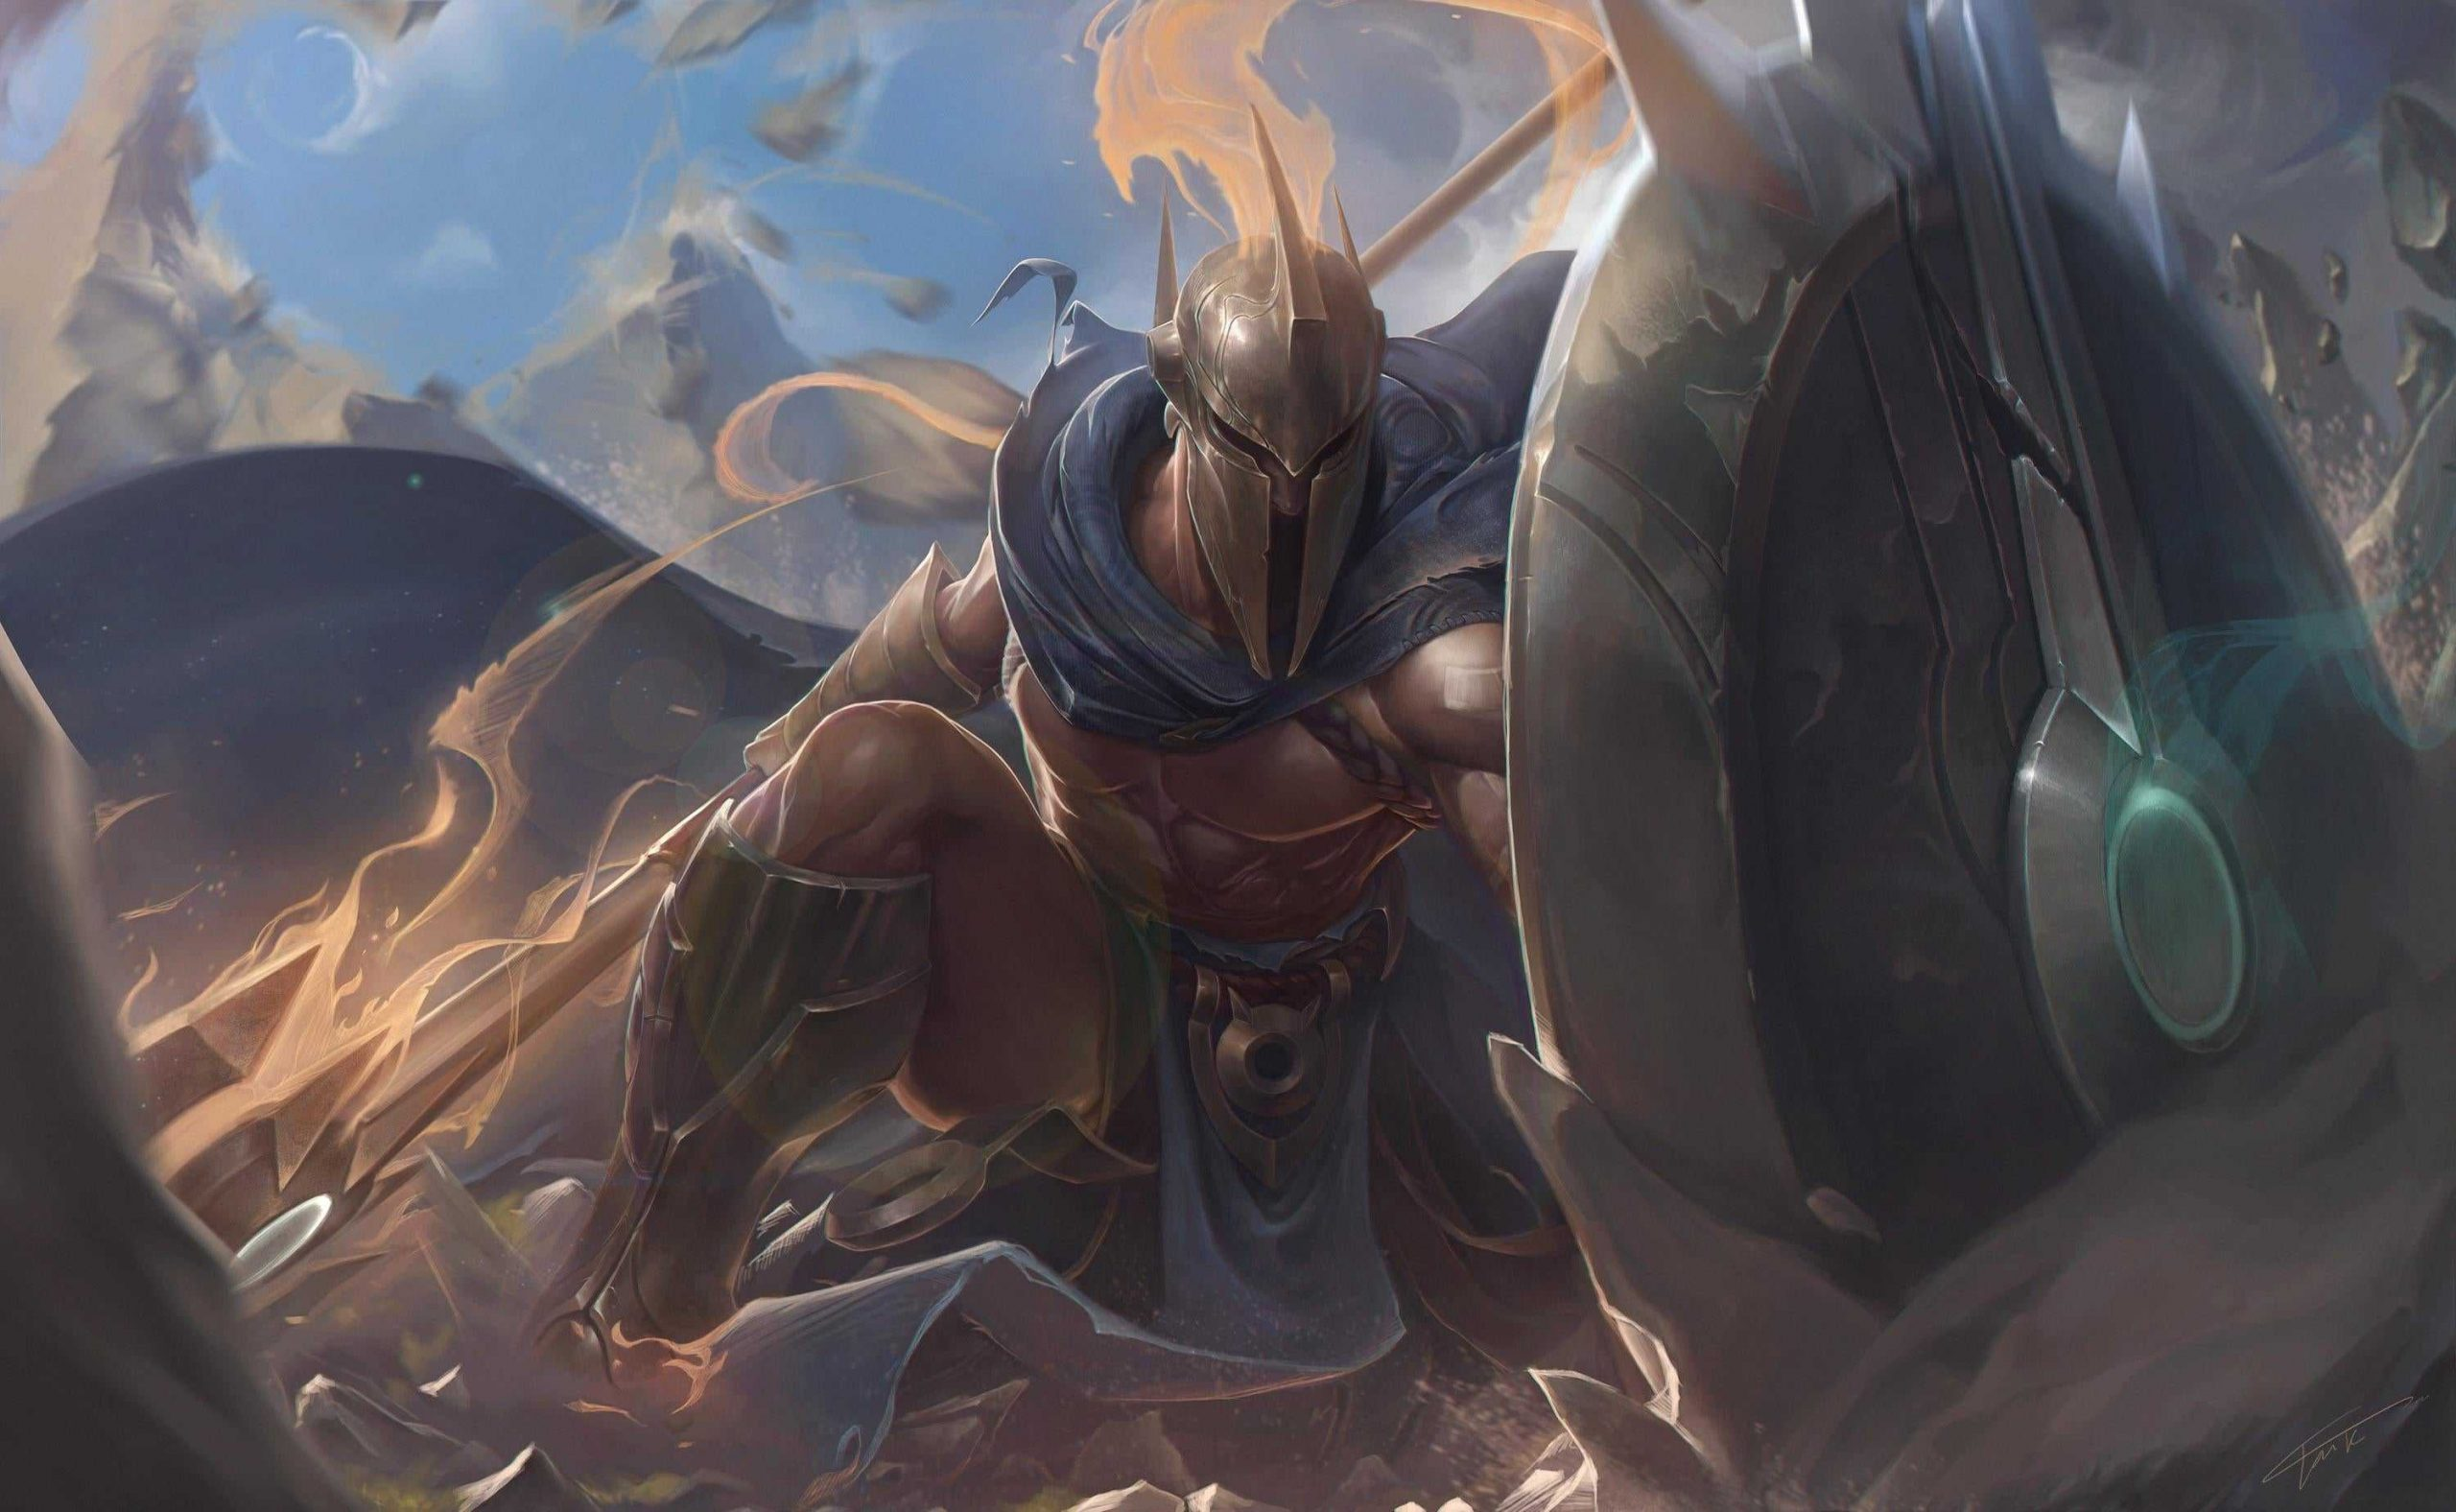 league lethality, League of legends, league of legends lethality, lethality league of legends, lethality vs armor pen, Lol, lol lethality, what does lethality do in lol?, what is lethality league?